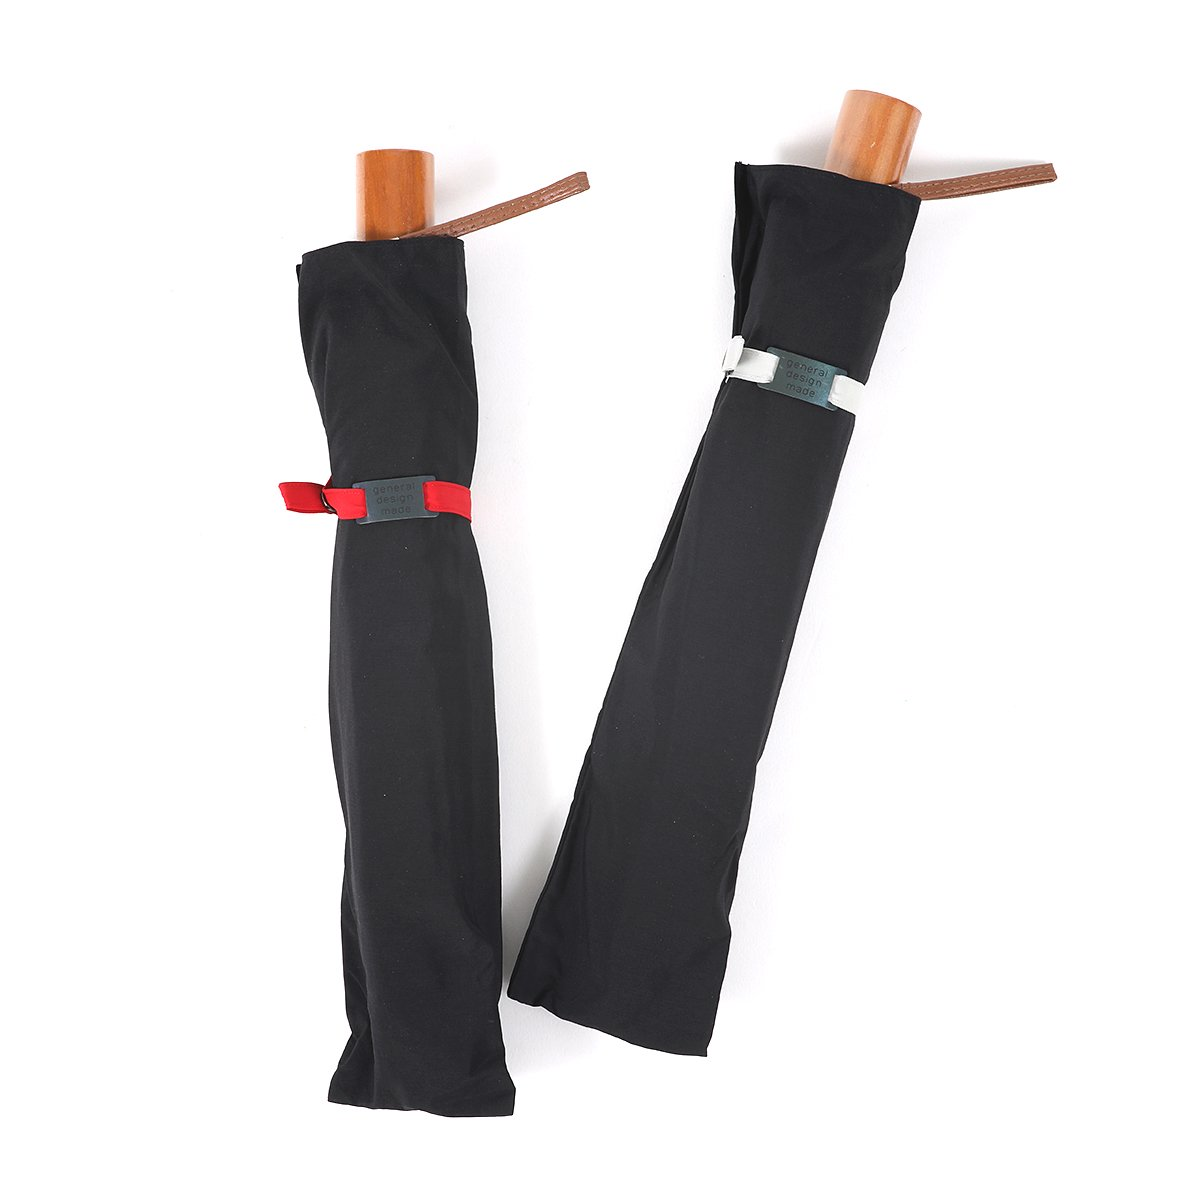 608K CORDURA FOLDING UMBRELLA 詳細画像8